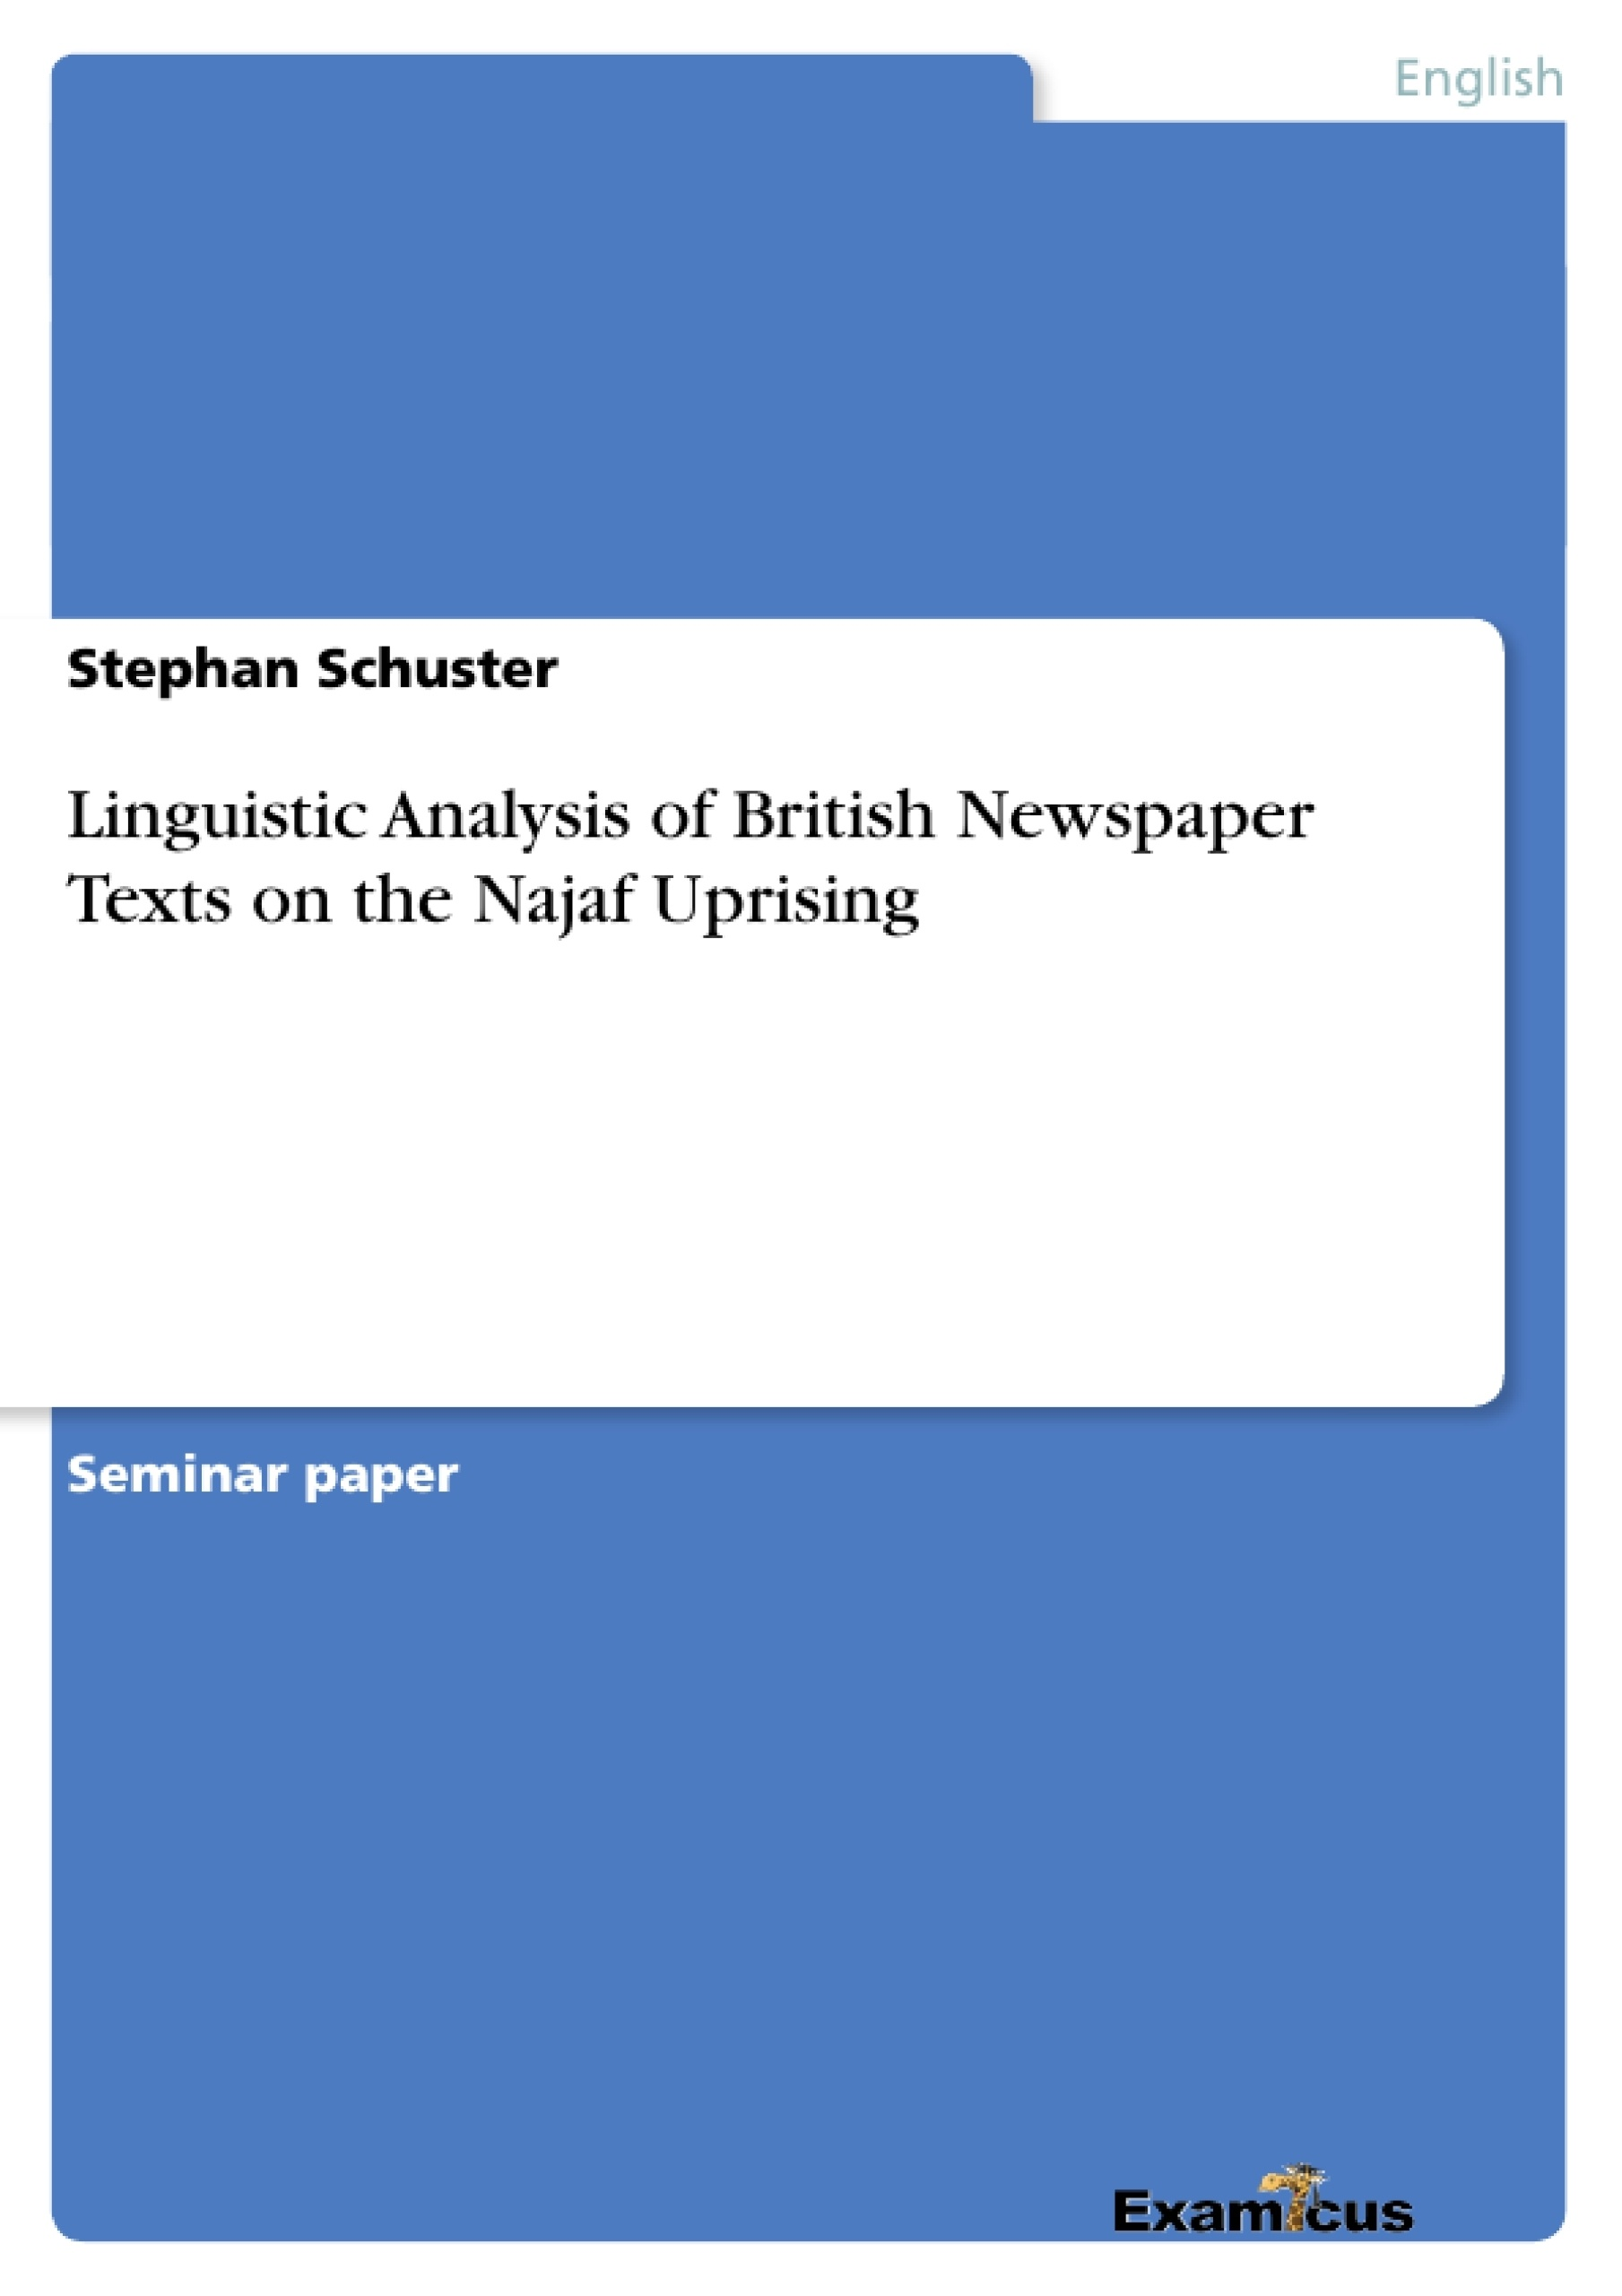 Title: Linguistic Analysis of British Newspaper Texts on the Najaf Uprising